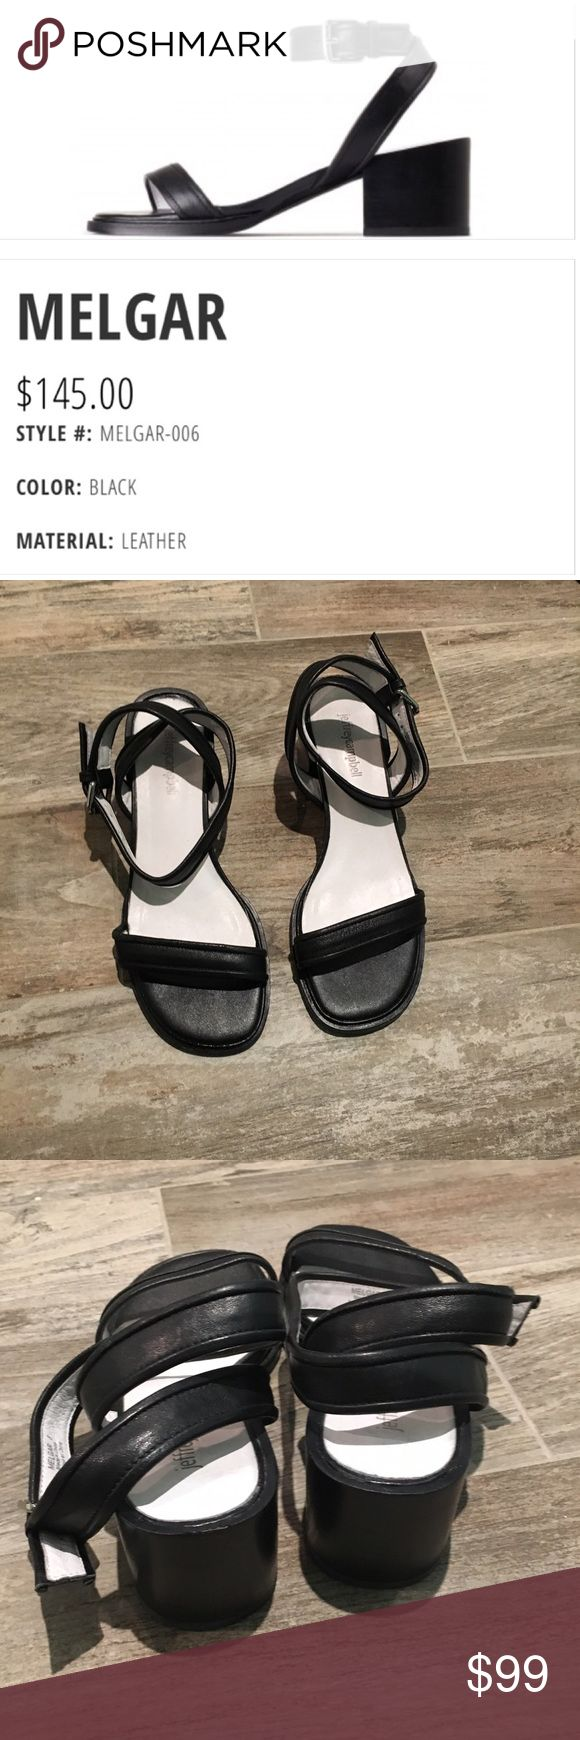 Jeffrey Campbell sandals Worn for about 20 minutes.  In the house only! 😉.  Super cute black leather sandals that don't need to be unbuckled if u know what your doing! Super soft leather and no flaws other than the bottom of shoe. Jeffrey Campbell Shoes Sandals